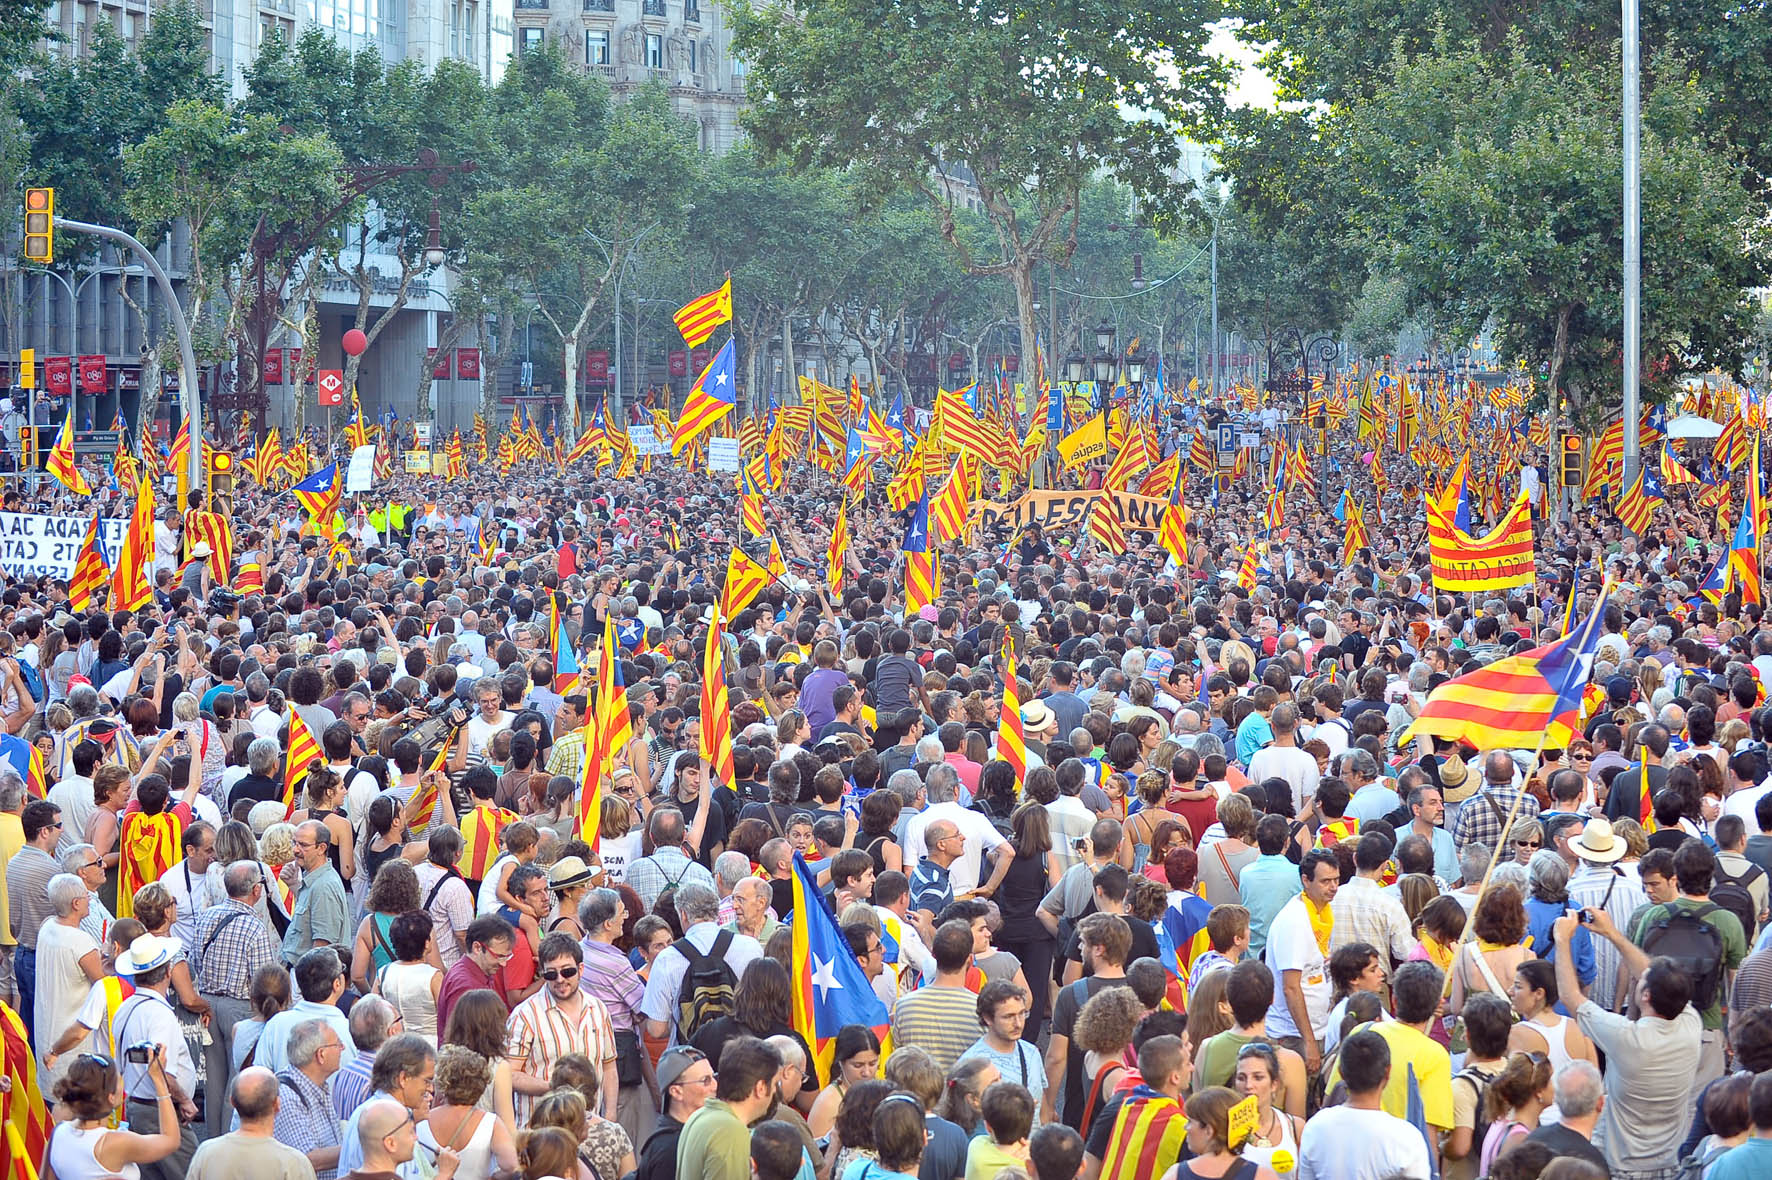 Protest in Barcelona on July 10, 2020, against the Constitutional Court ruling on Catalonia's Statute of Autonomy Mikel Laburu)